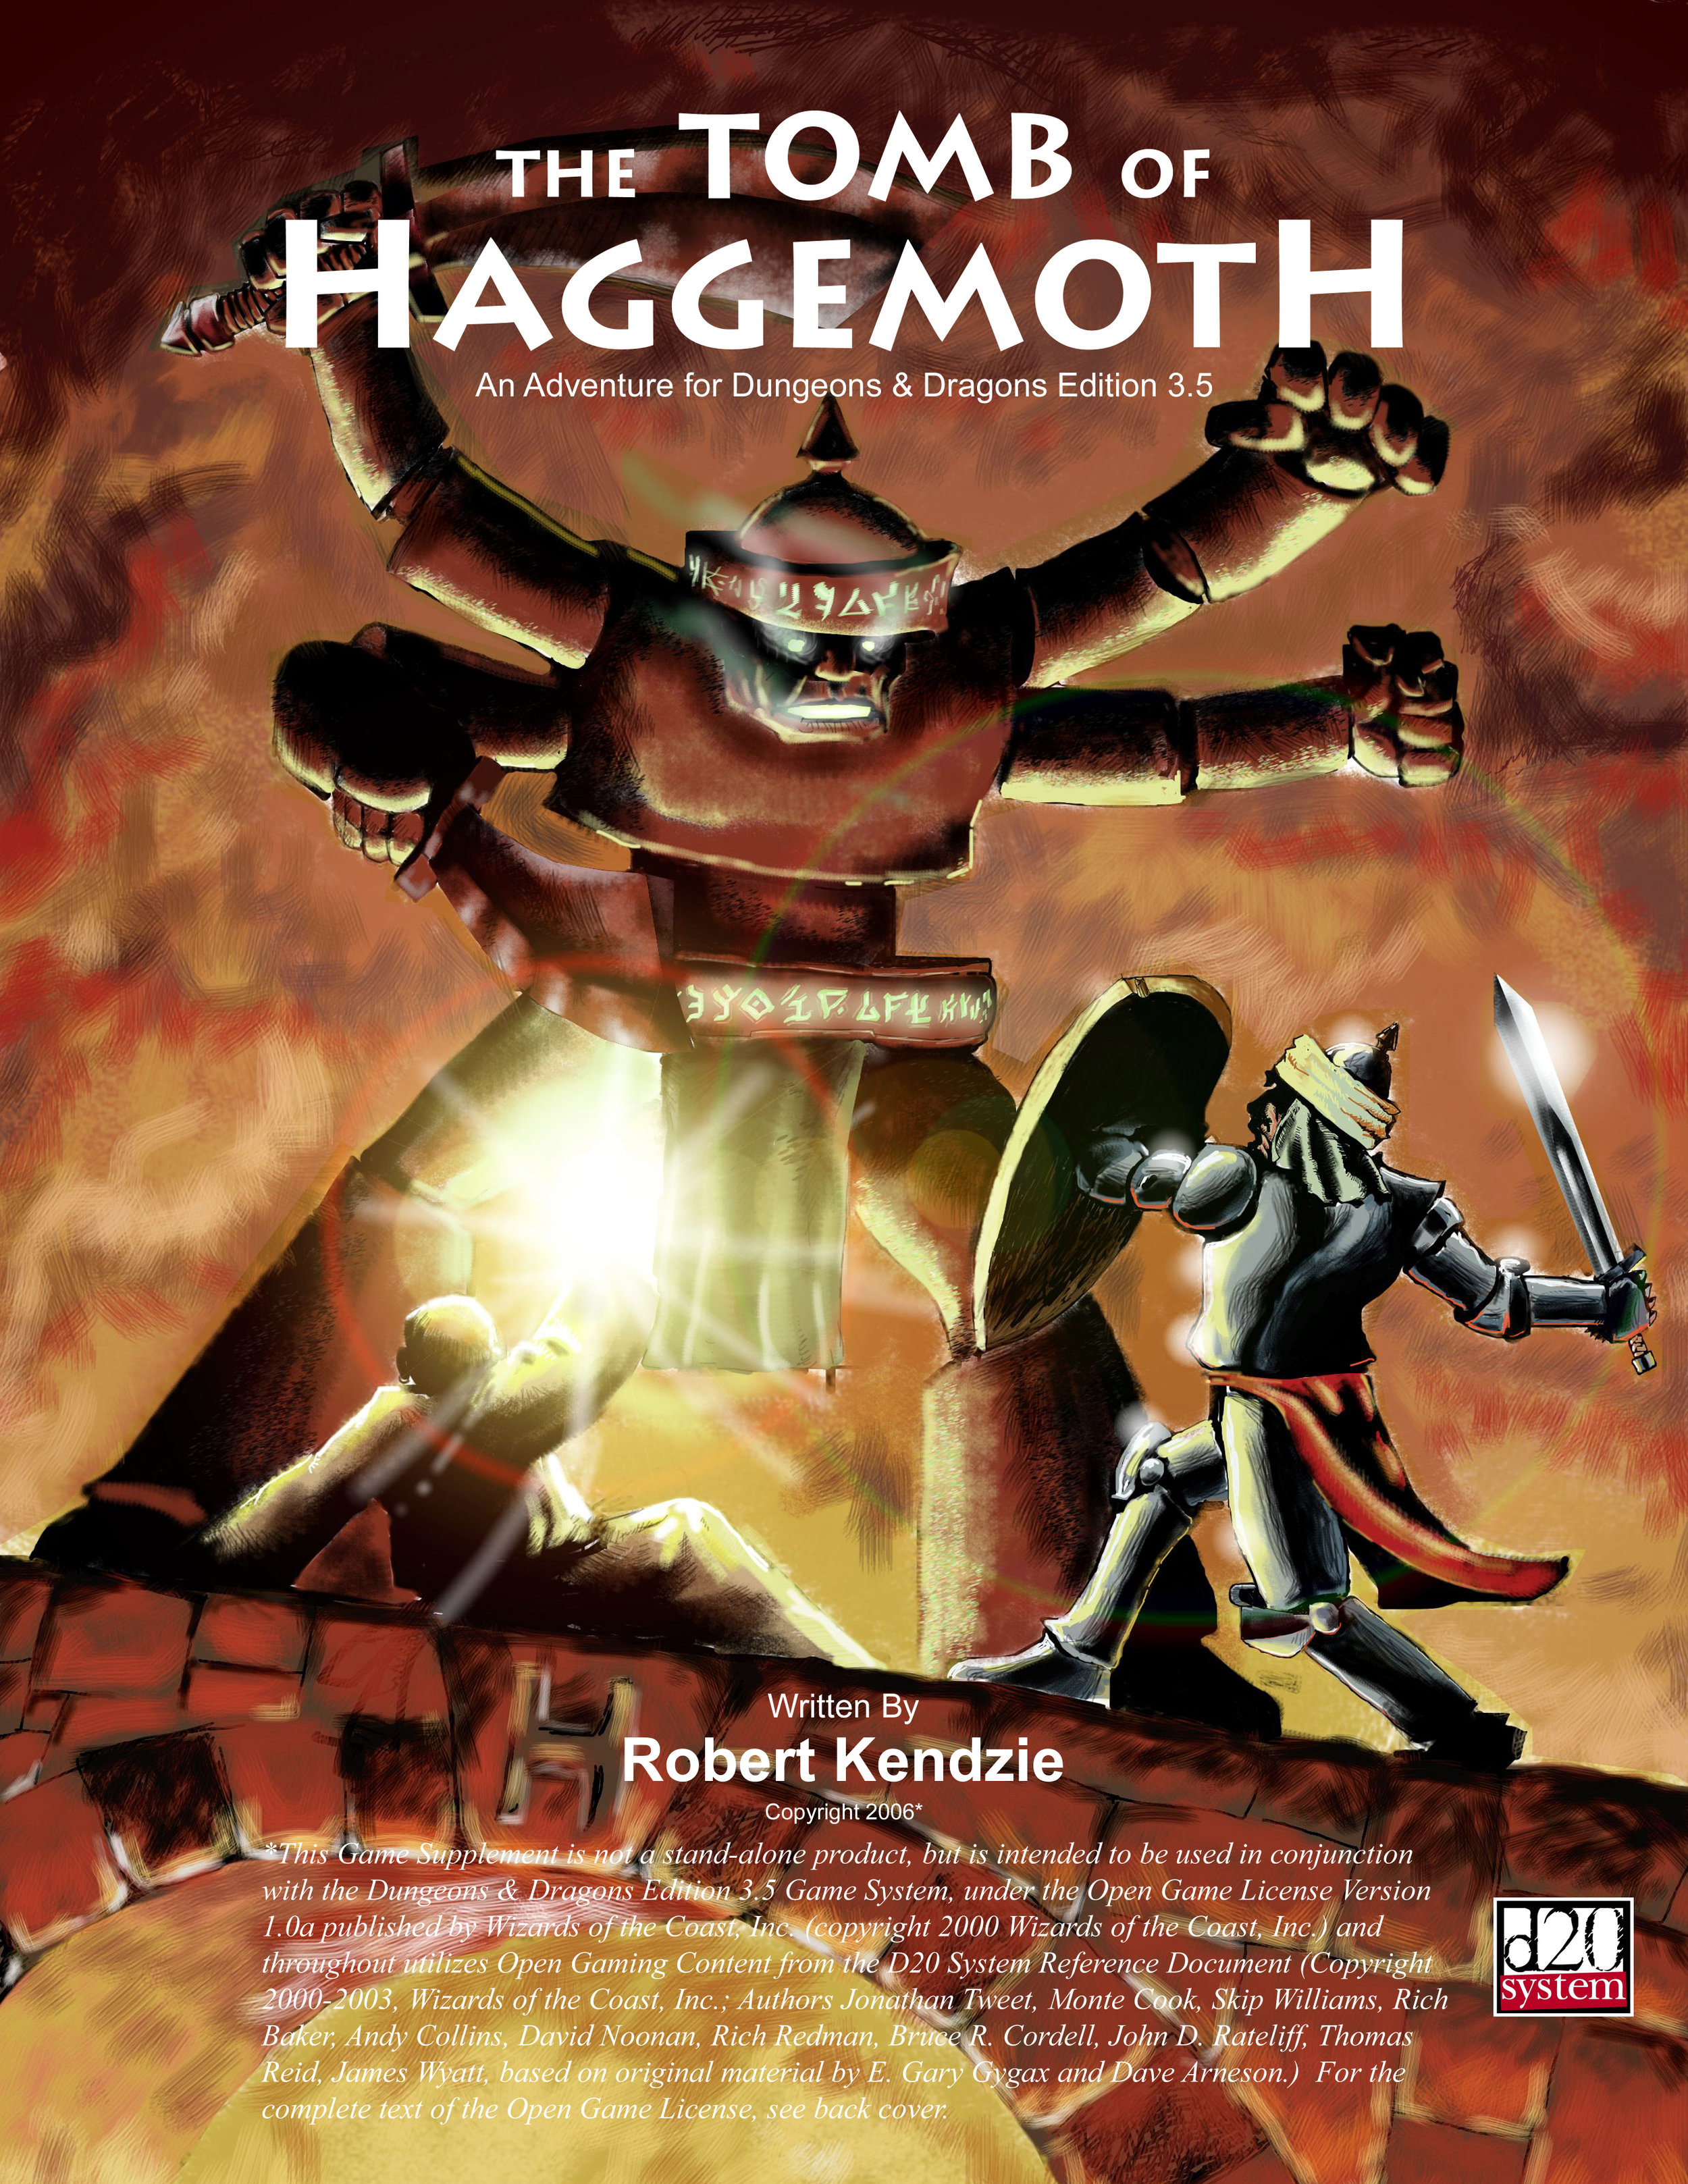 The Tomb of Haggemoth - An adventure for Dungeons & Dragons version 3.5 published under the d20 Open Game License. Your party of adventurers takes to the high seas on a quest to learn the fate of a legendary wizard. From frozen tundras to vast deserts to uncharted jungle islands, follow the trail of Haggemoth! Designed to take a party of 4-6 adventurers from 3rd through 8th level. Written and designed by Robert Kendzie. Cover and interior illustrations by Mikolaj Ostapiuk. Follow the podcast of this adventure at RPGmp3.com! Copyright 2007, black & white, 87 pages